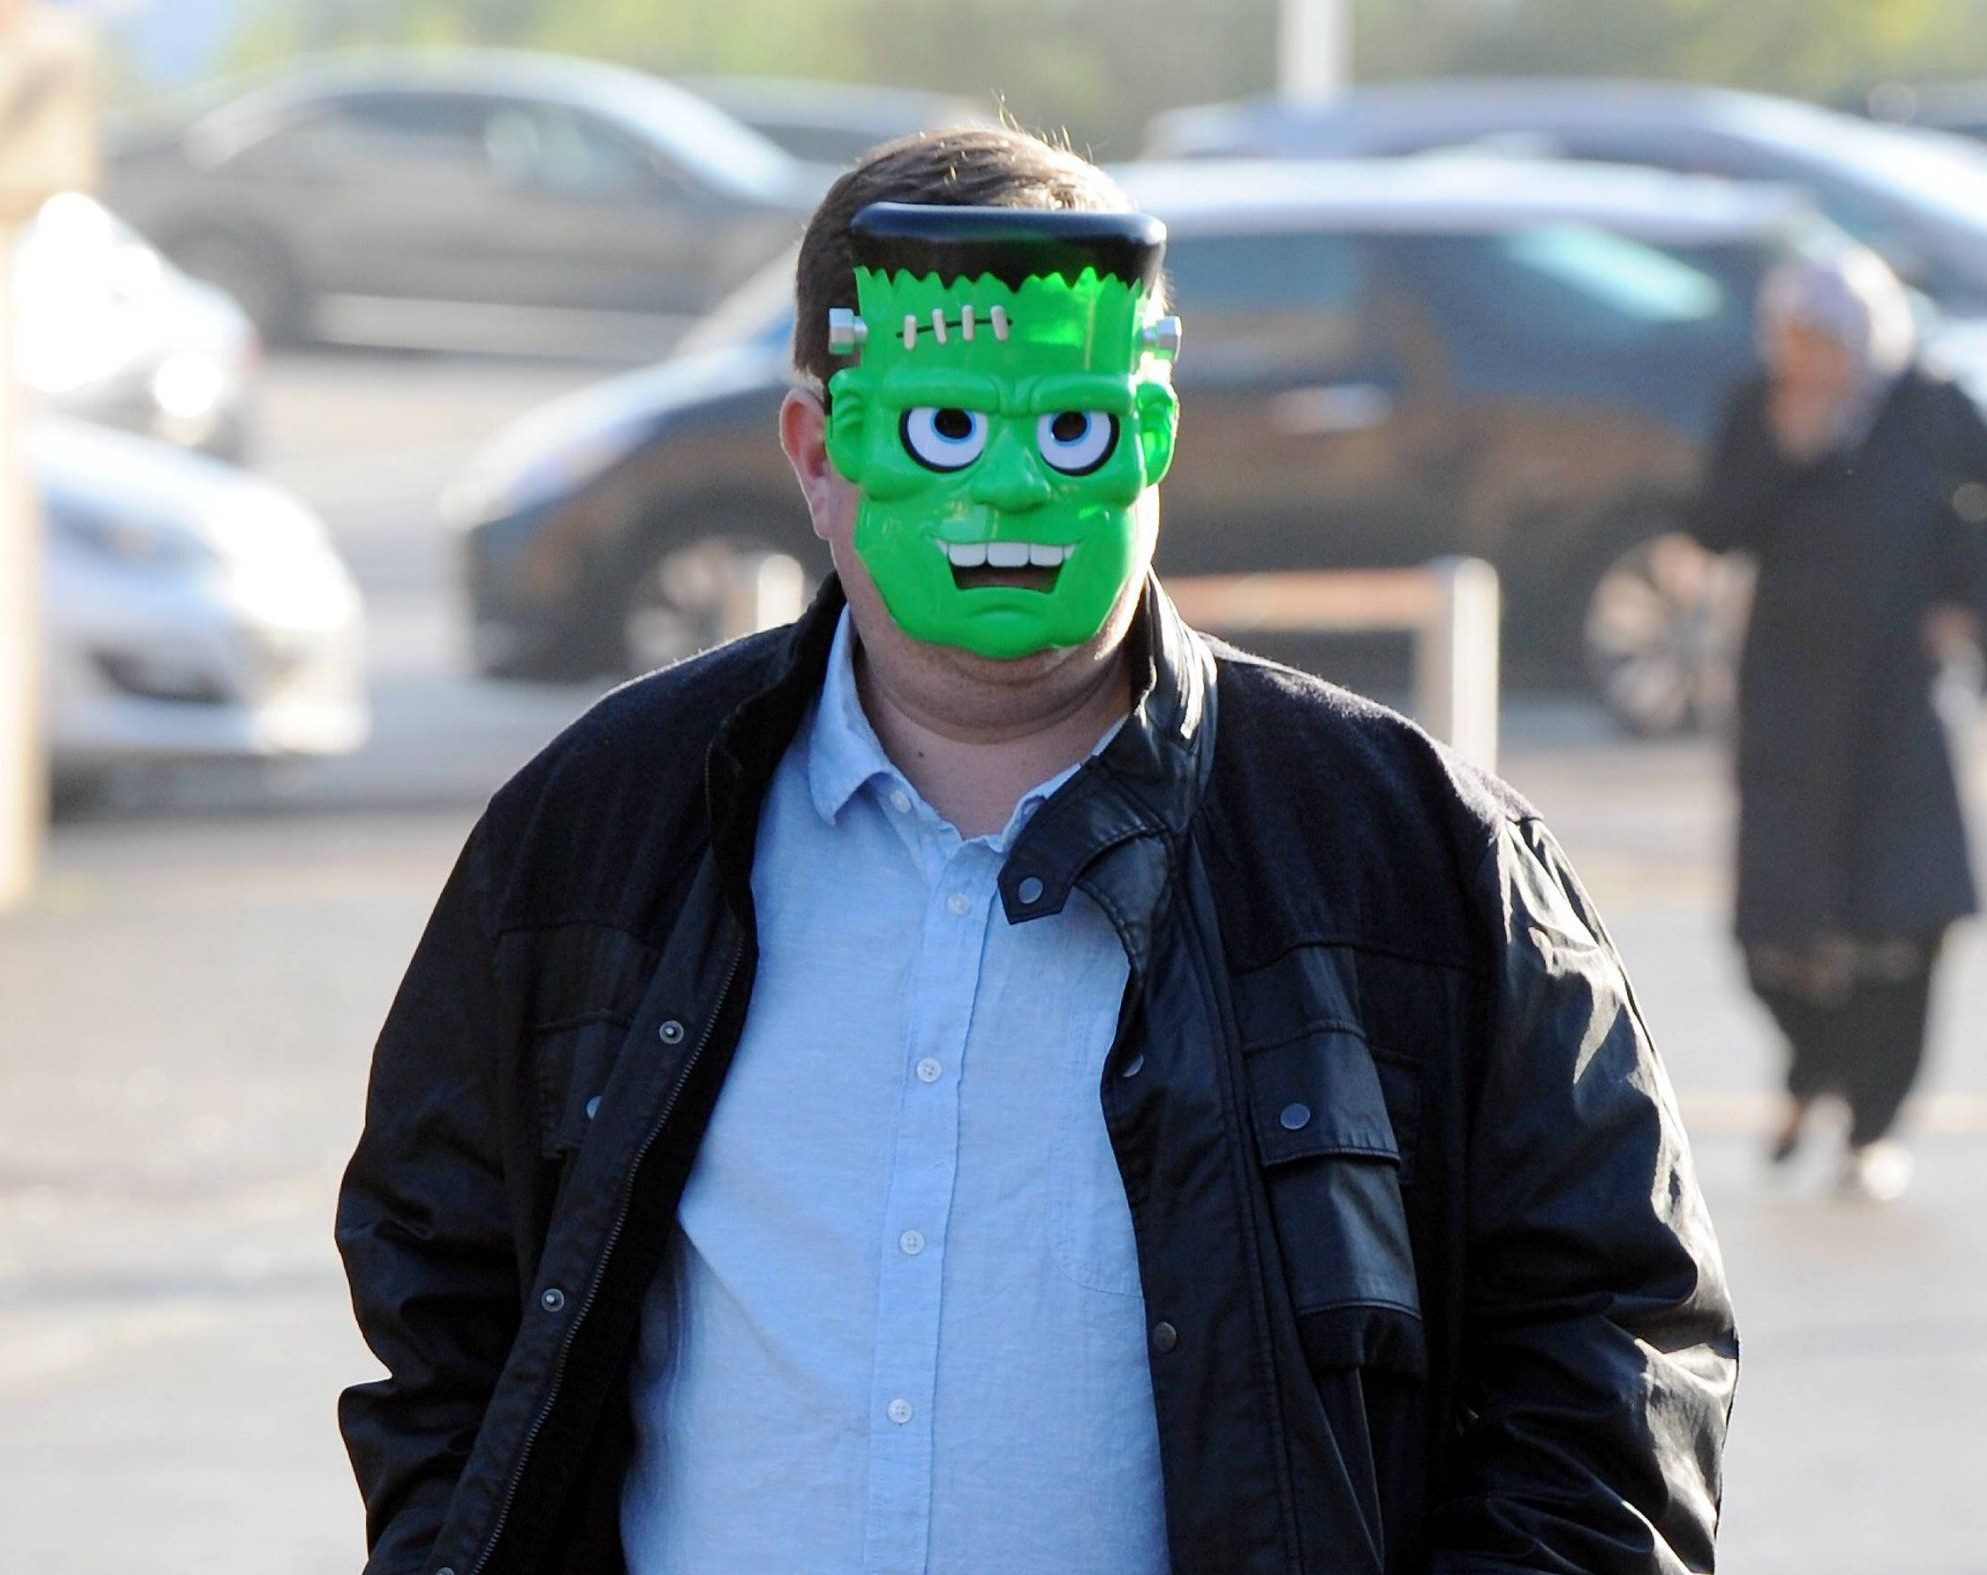 Dated: 10/10/2018 HOMELESS MAN PAINT ATTACK DEATH COURT CASE Painter and decorator Aaron Jones pictured arriving at Teesside Magistrates court today (Wed) wearing a Frankenstein mask. He is facing charges after posting the video of homeless man Michael Cash being covered in red paint outside of a TESCO store in Normanby, just days before Michael was found dead. See copy by North News